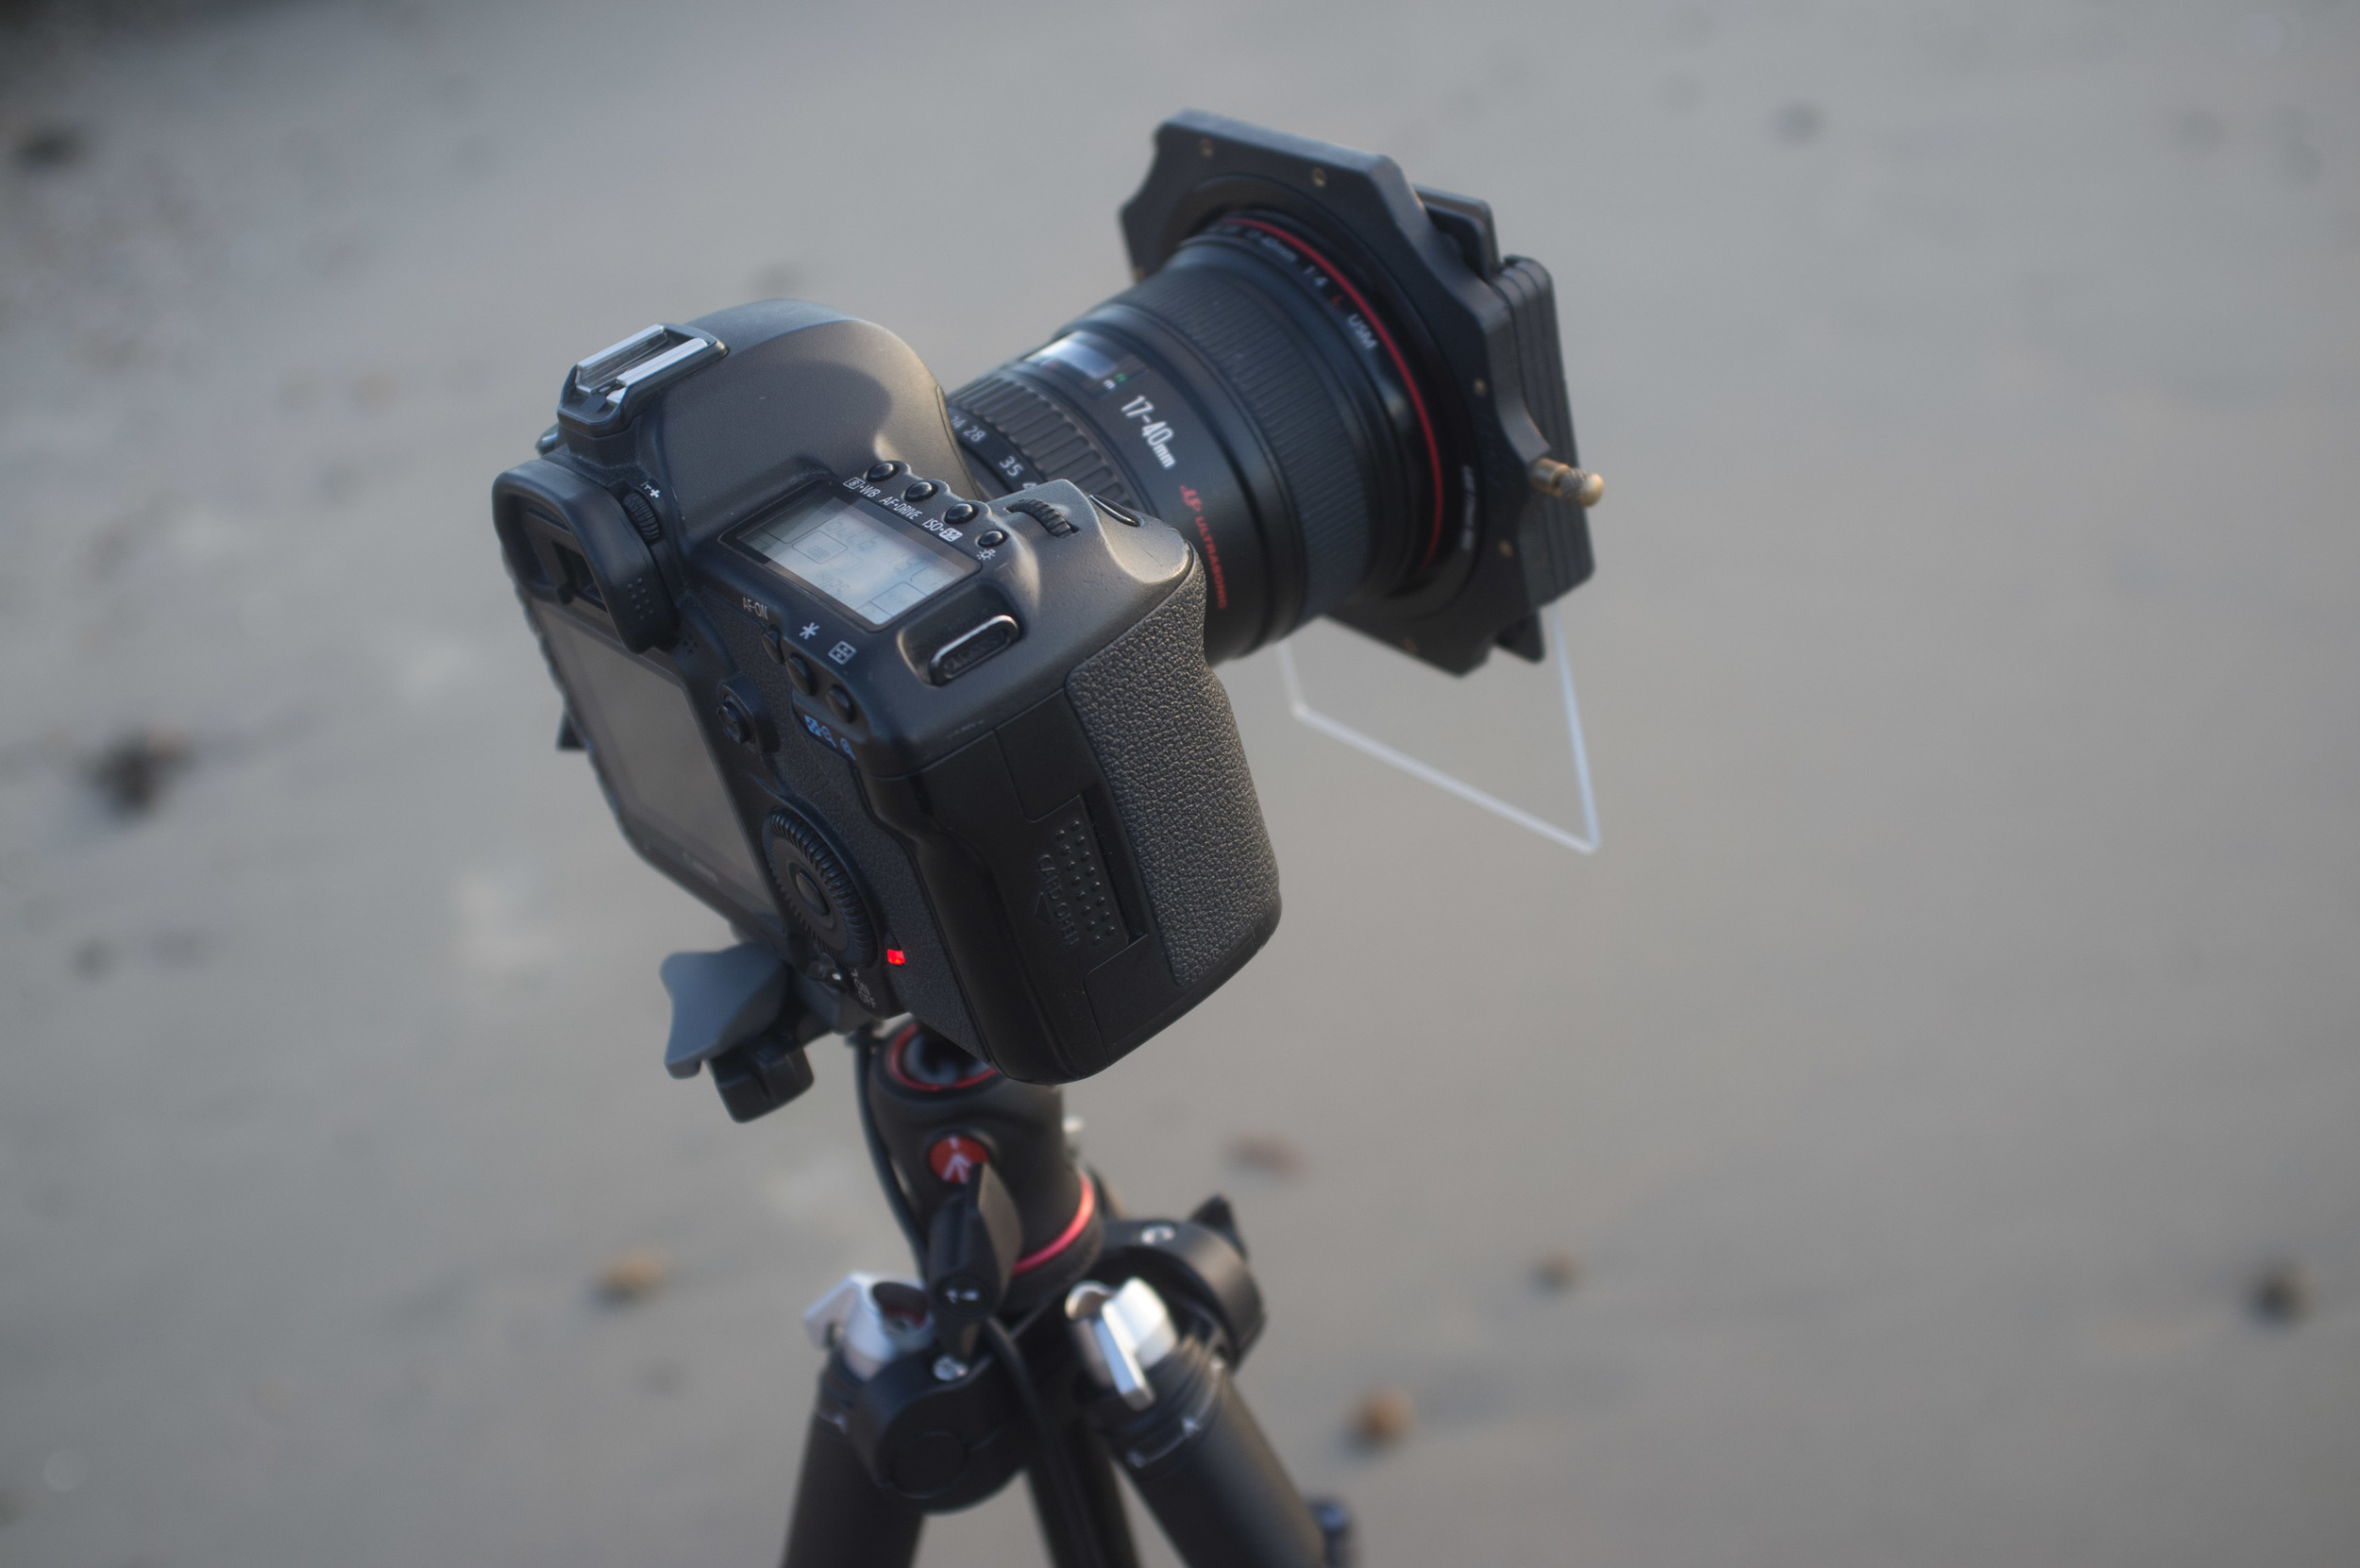 fully extended with Lee cradle, 17-40 and two Lee filters on, the locks enable the legs to fold flat for packing and low shooting